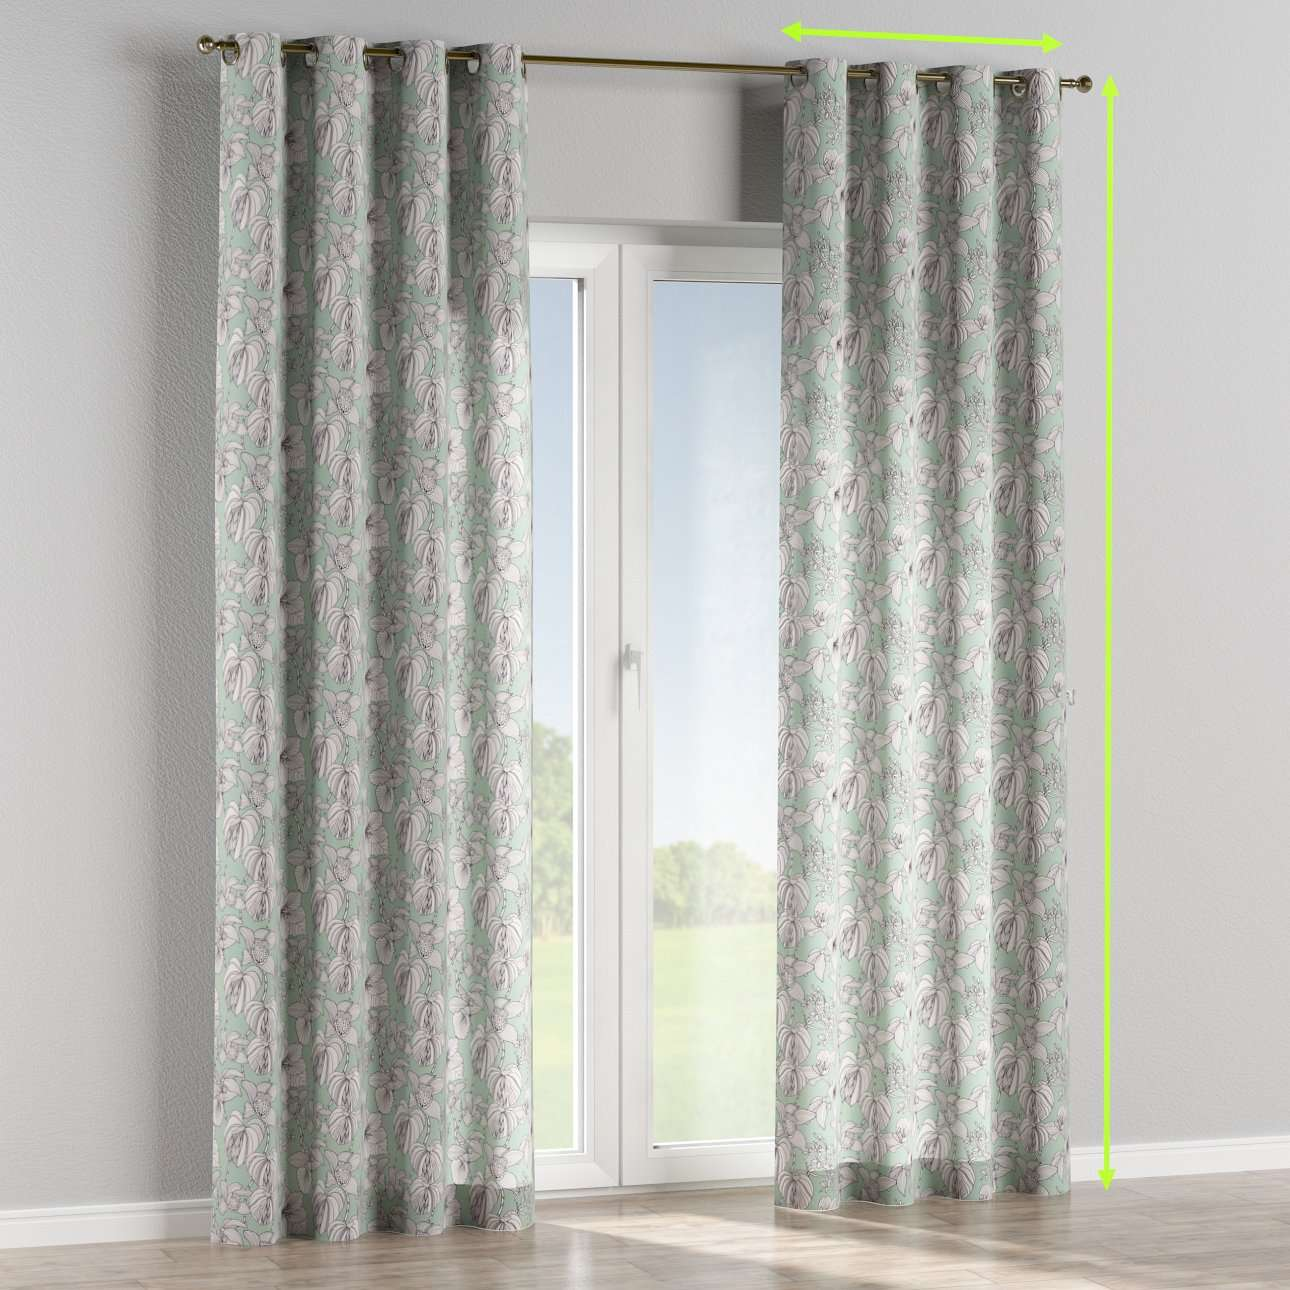 Eyelet curtain in collection SALE, fabric: 137-76